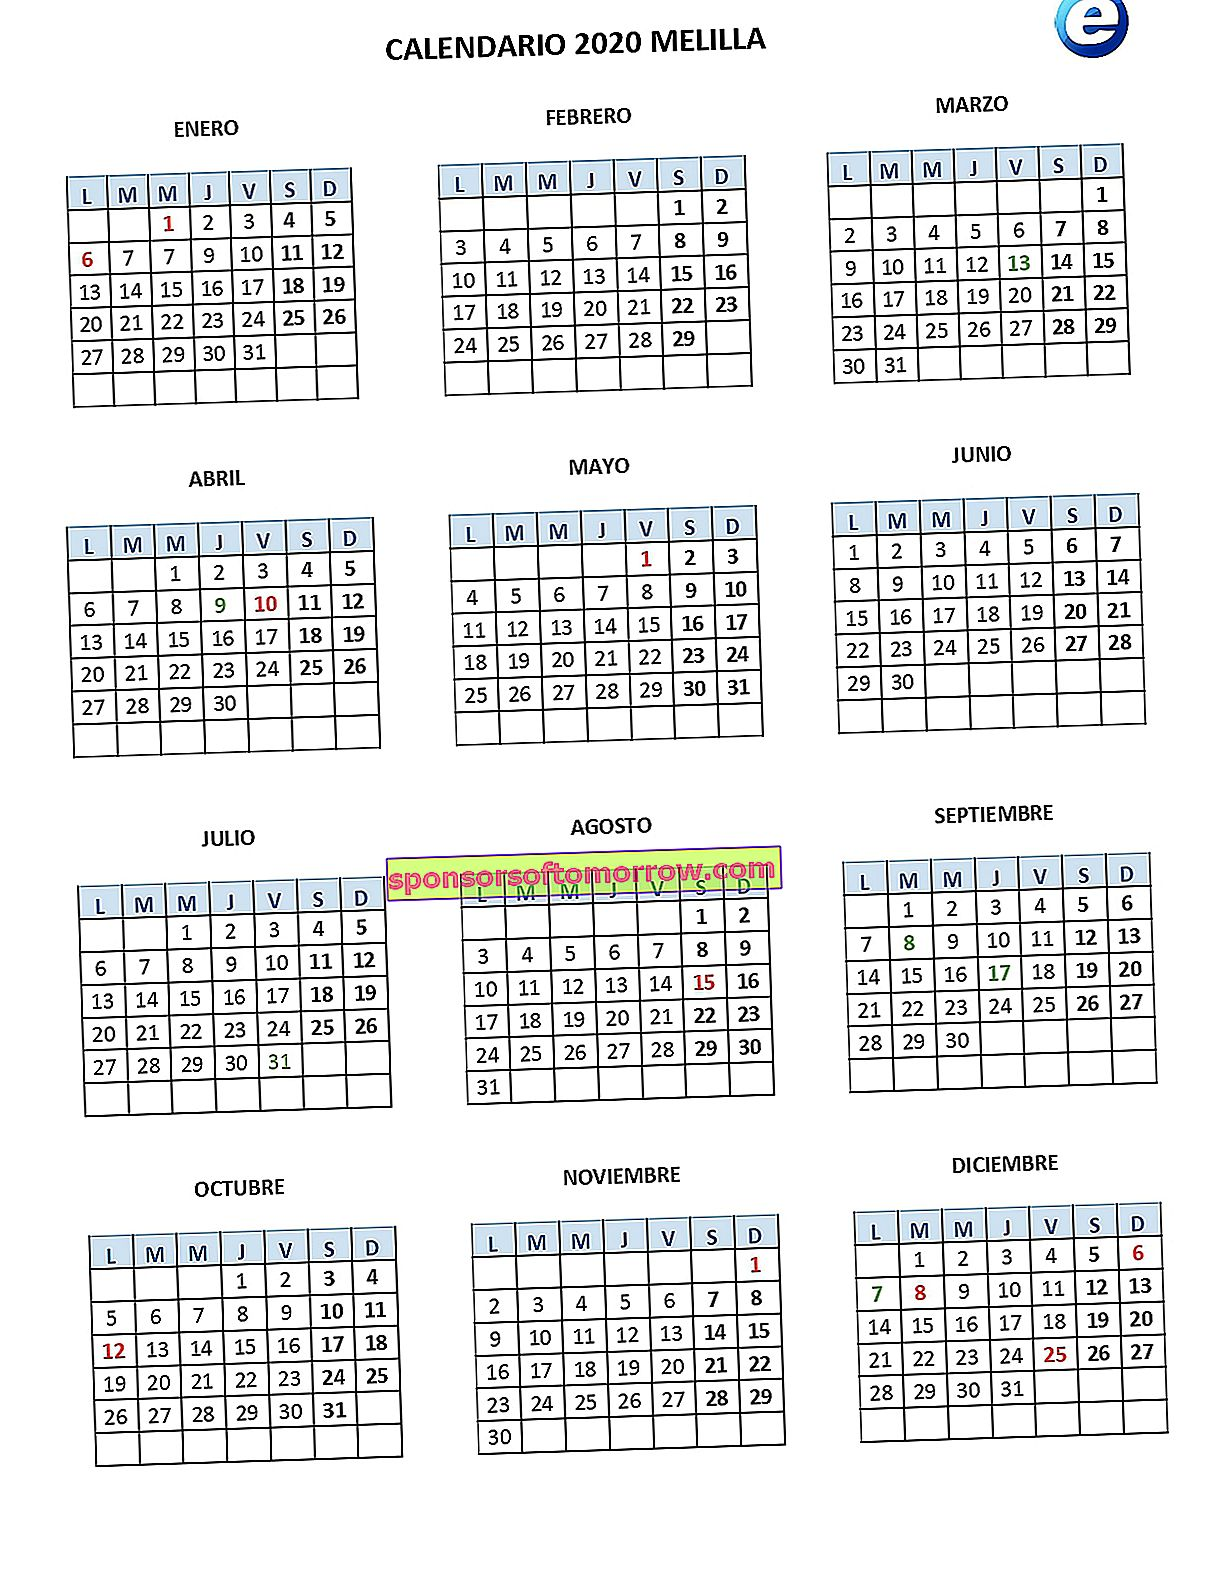 Melilla CALENDAR 2020 SPAIN_pages-to-jpg-0001